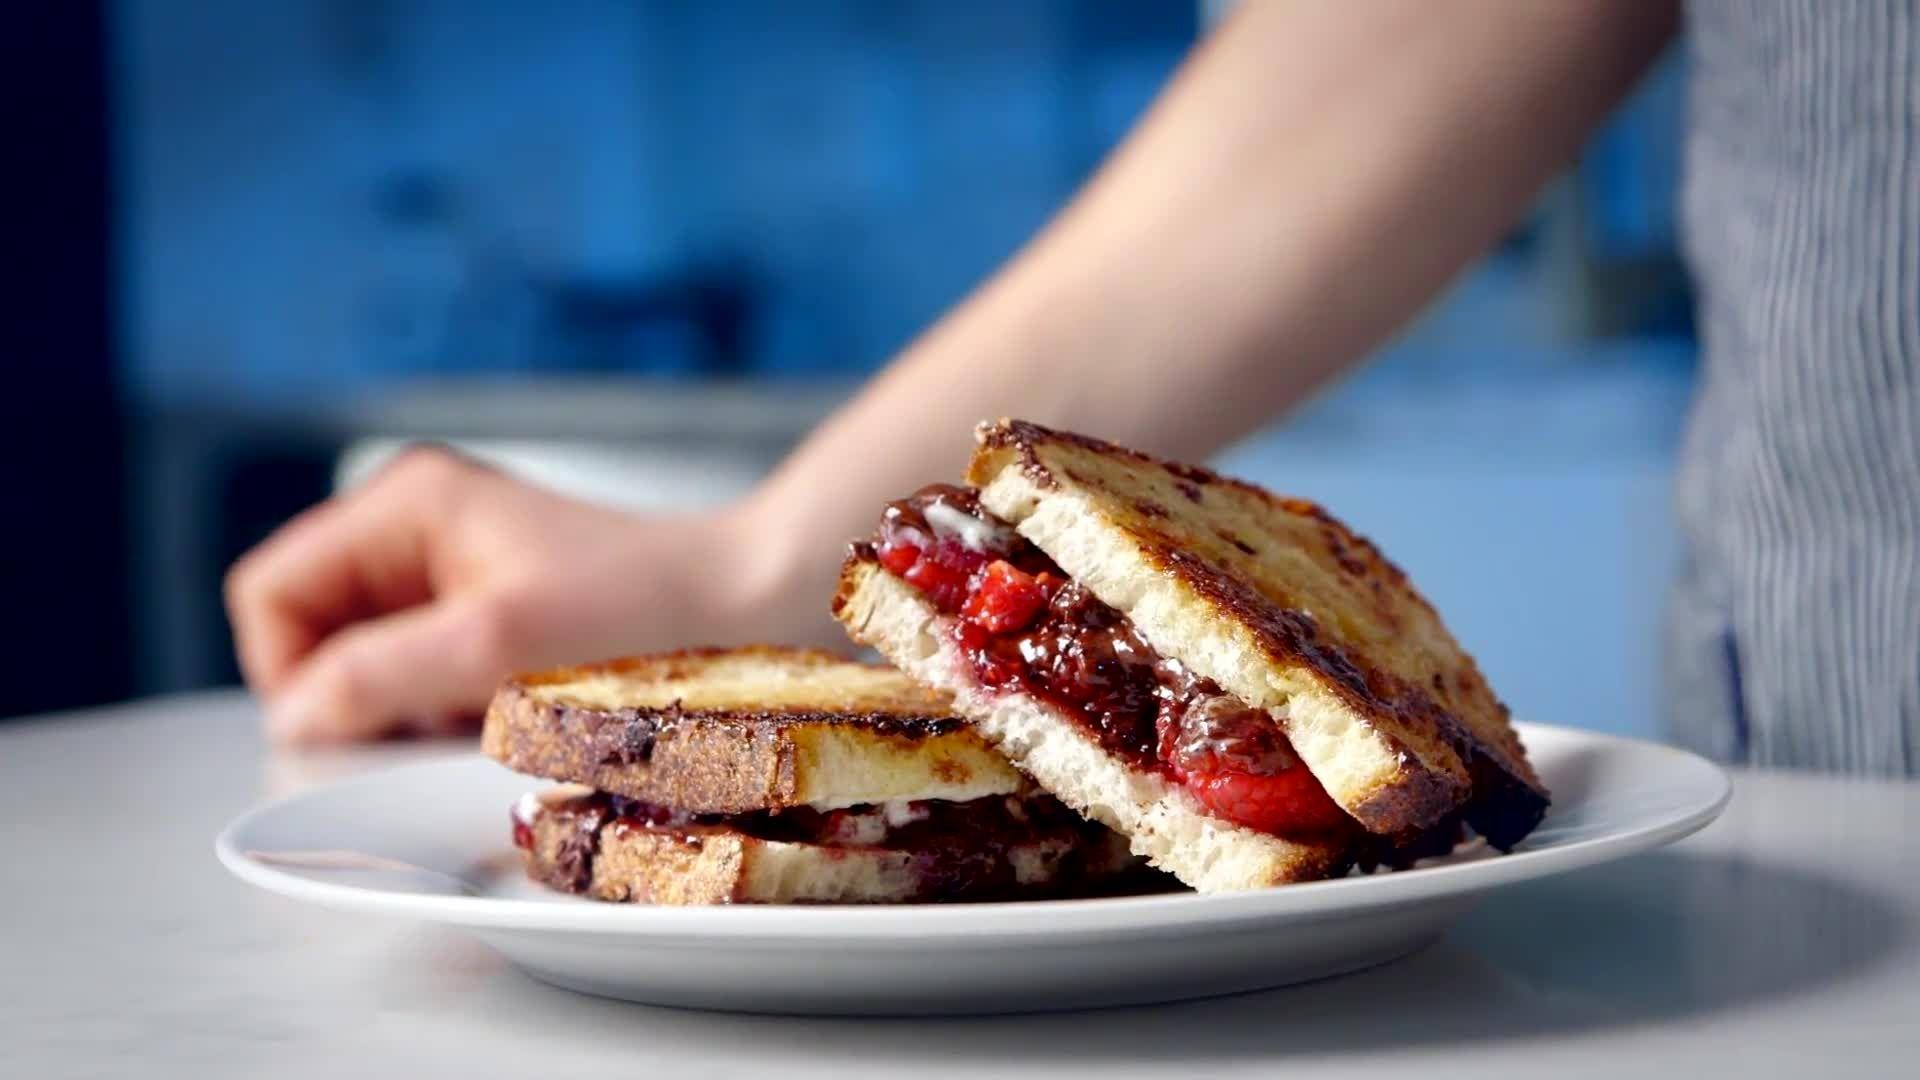 Chocolate Raspberry Panini Recipe